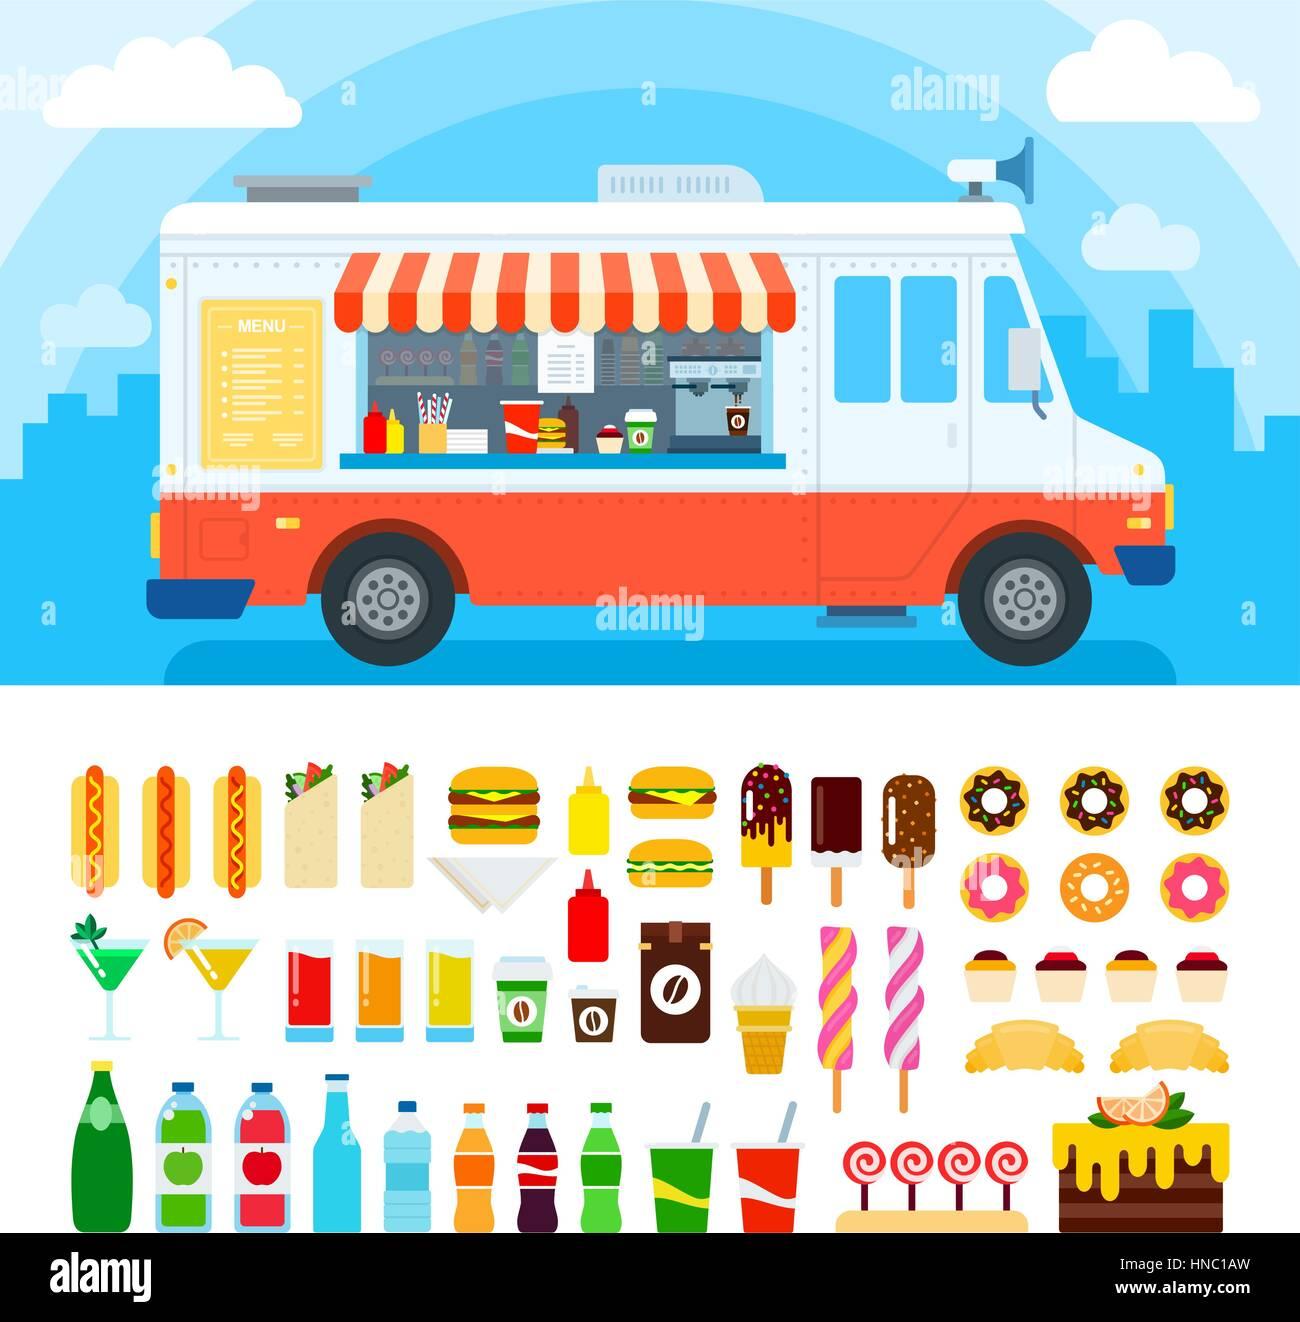 Food Truck Vector Flat Illustrations Retro Foods With Fast Against The Sky